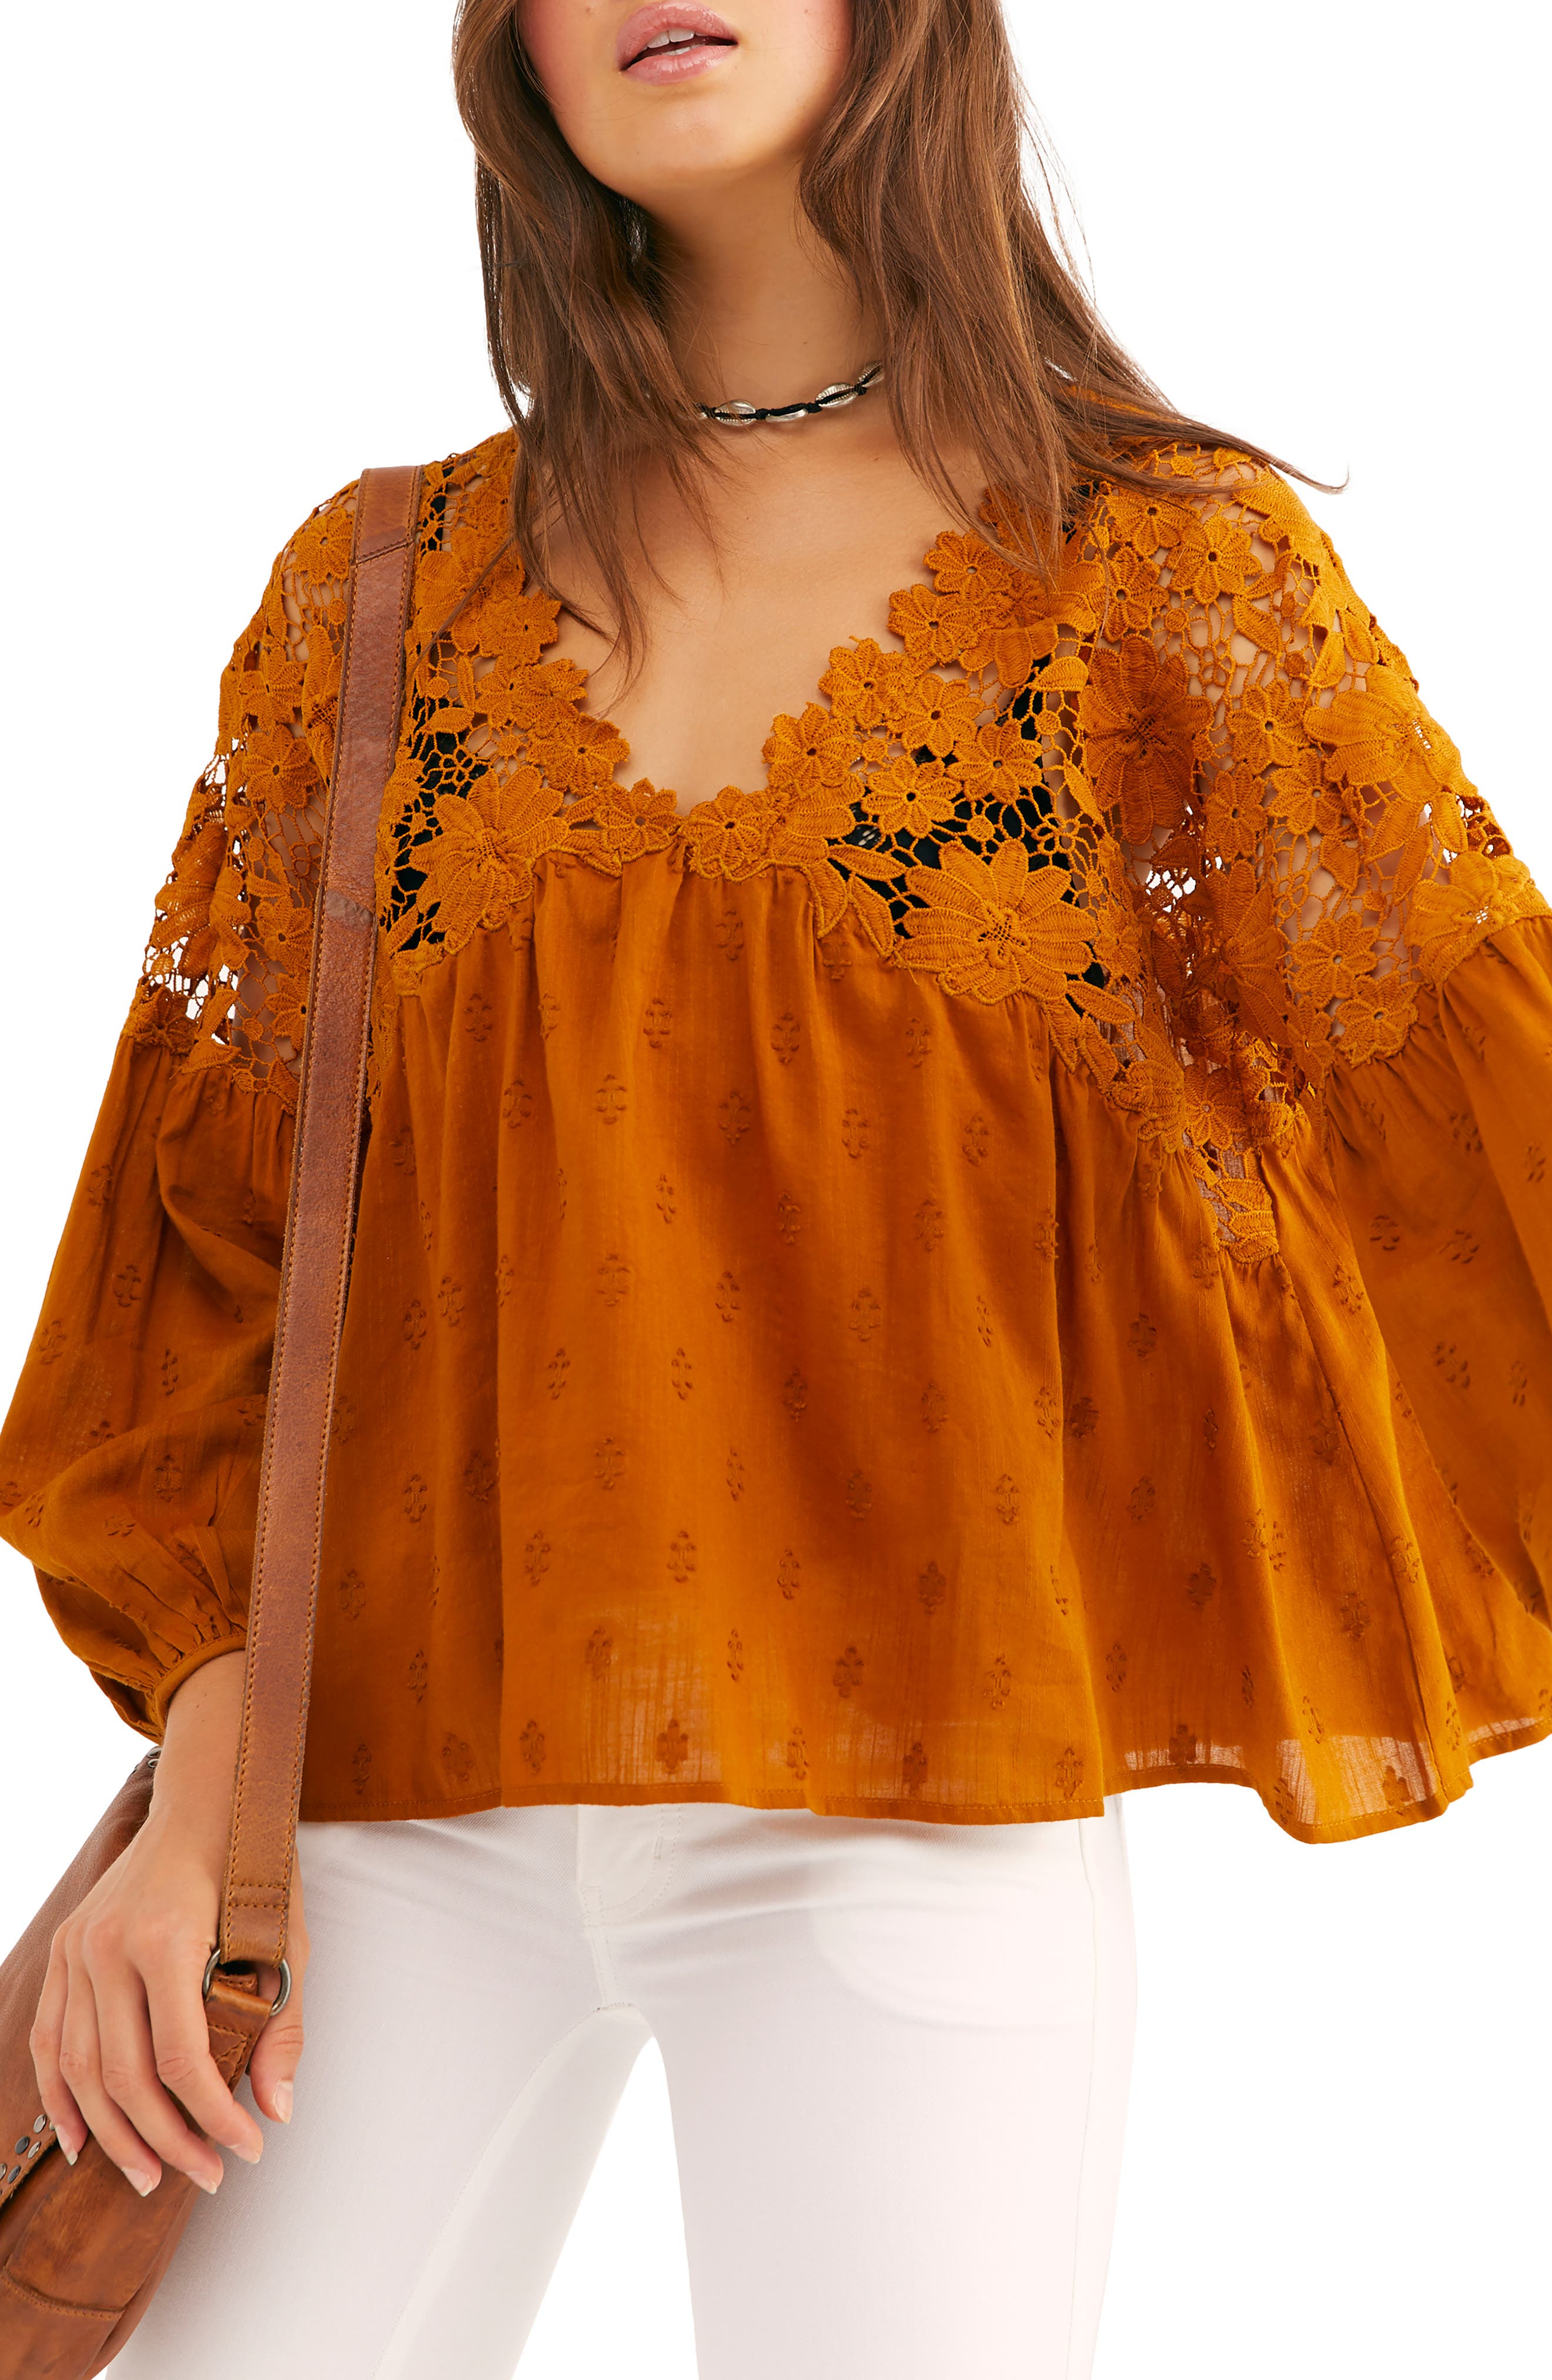 Women's 70s Shirts, Blouses, Hippie Tops Womens Free People Lina Embroidered Lace Blouse Size X-Small - Metallic $118.00 AT vintagedancer.com